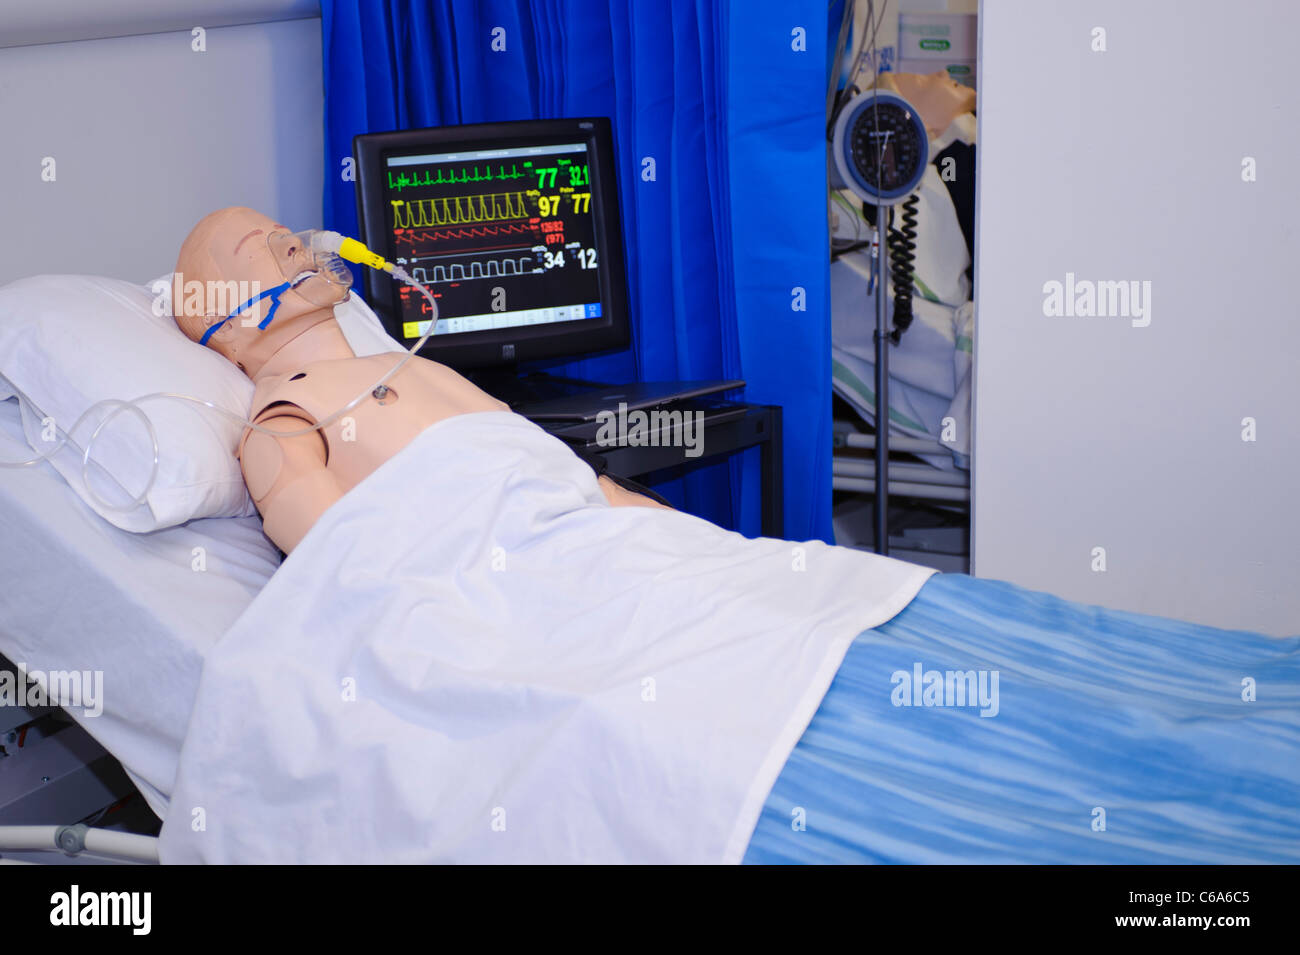 dummy patient simulated mannequin wearing oxygen mask in hospital bed vitals status monitor in background - Stock Image